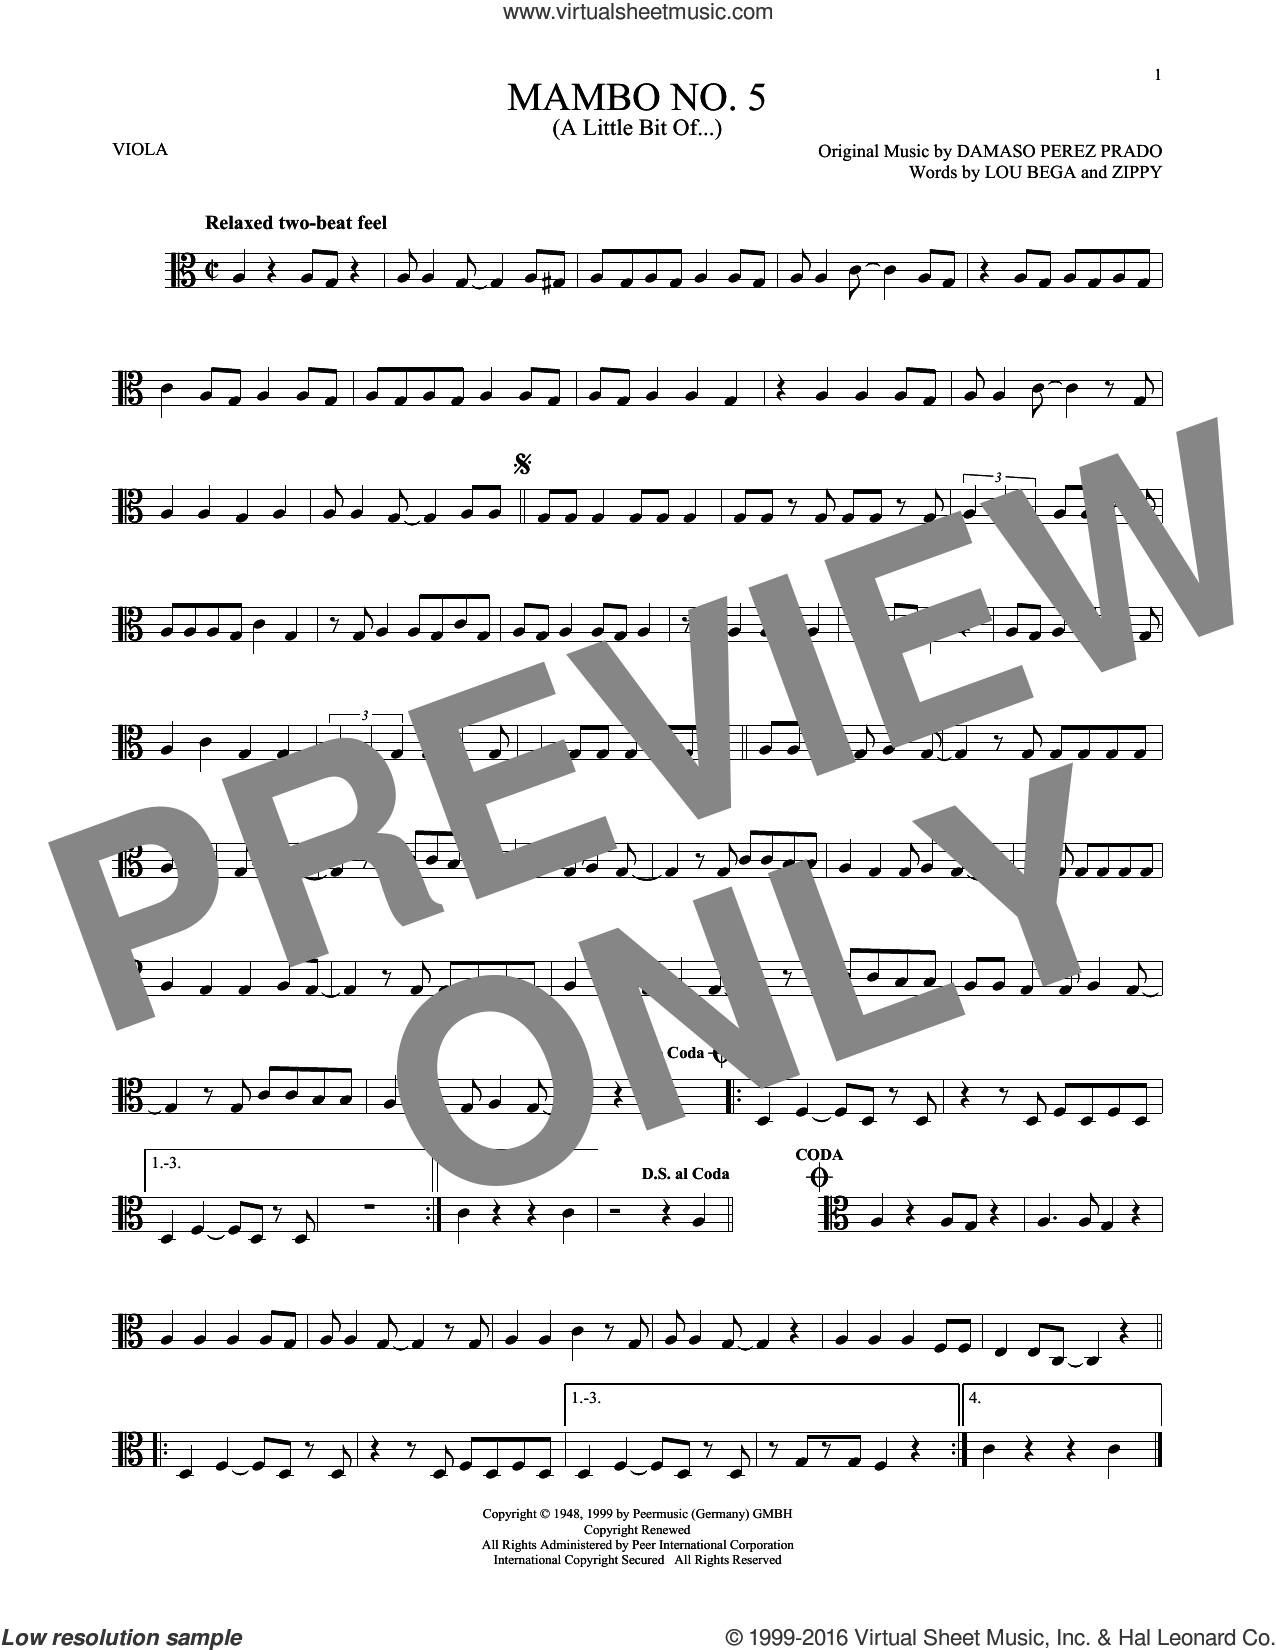 Mambo No. 5 (A Little Bit Of...) sheet music for viola solo by Lou Bega, Damaso Perez Prado and Zippy, intermediate skill level